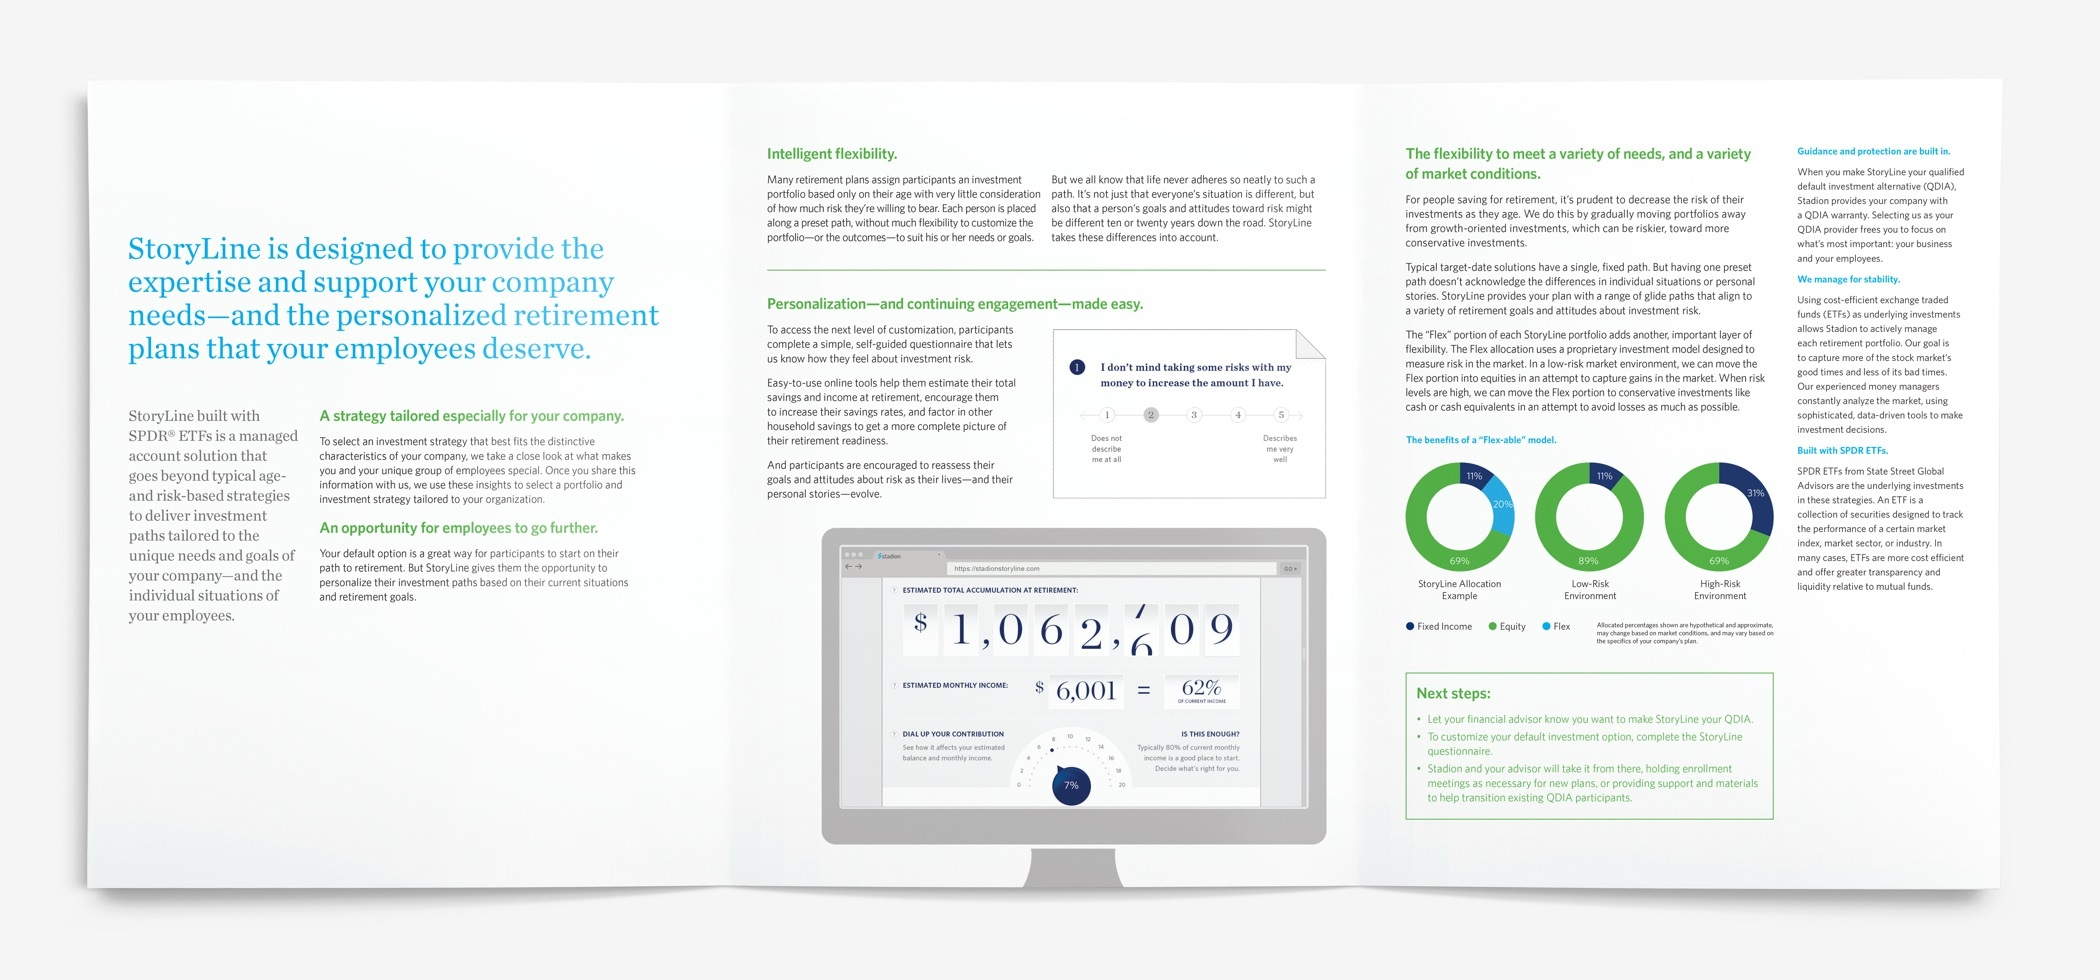 """Brochure reads """"StoryLine is designed to provide the expertise and support your company needs..."""""""